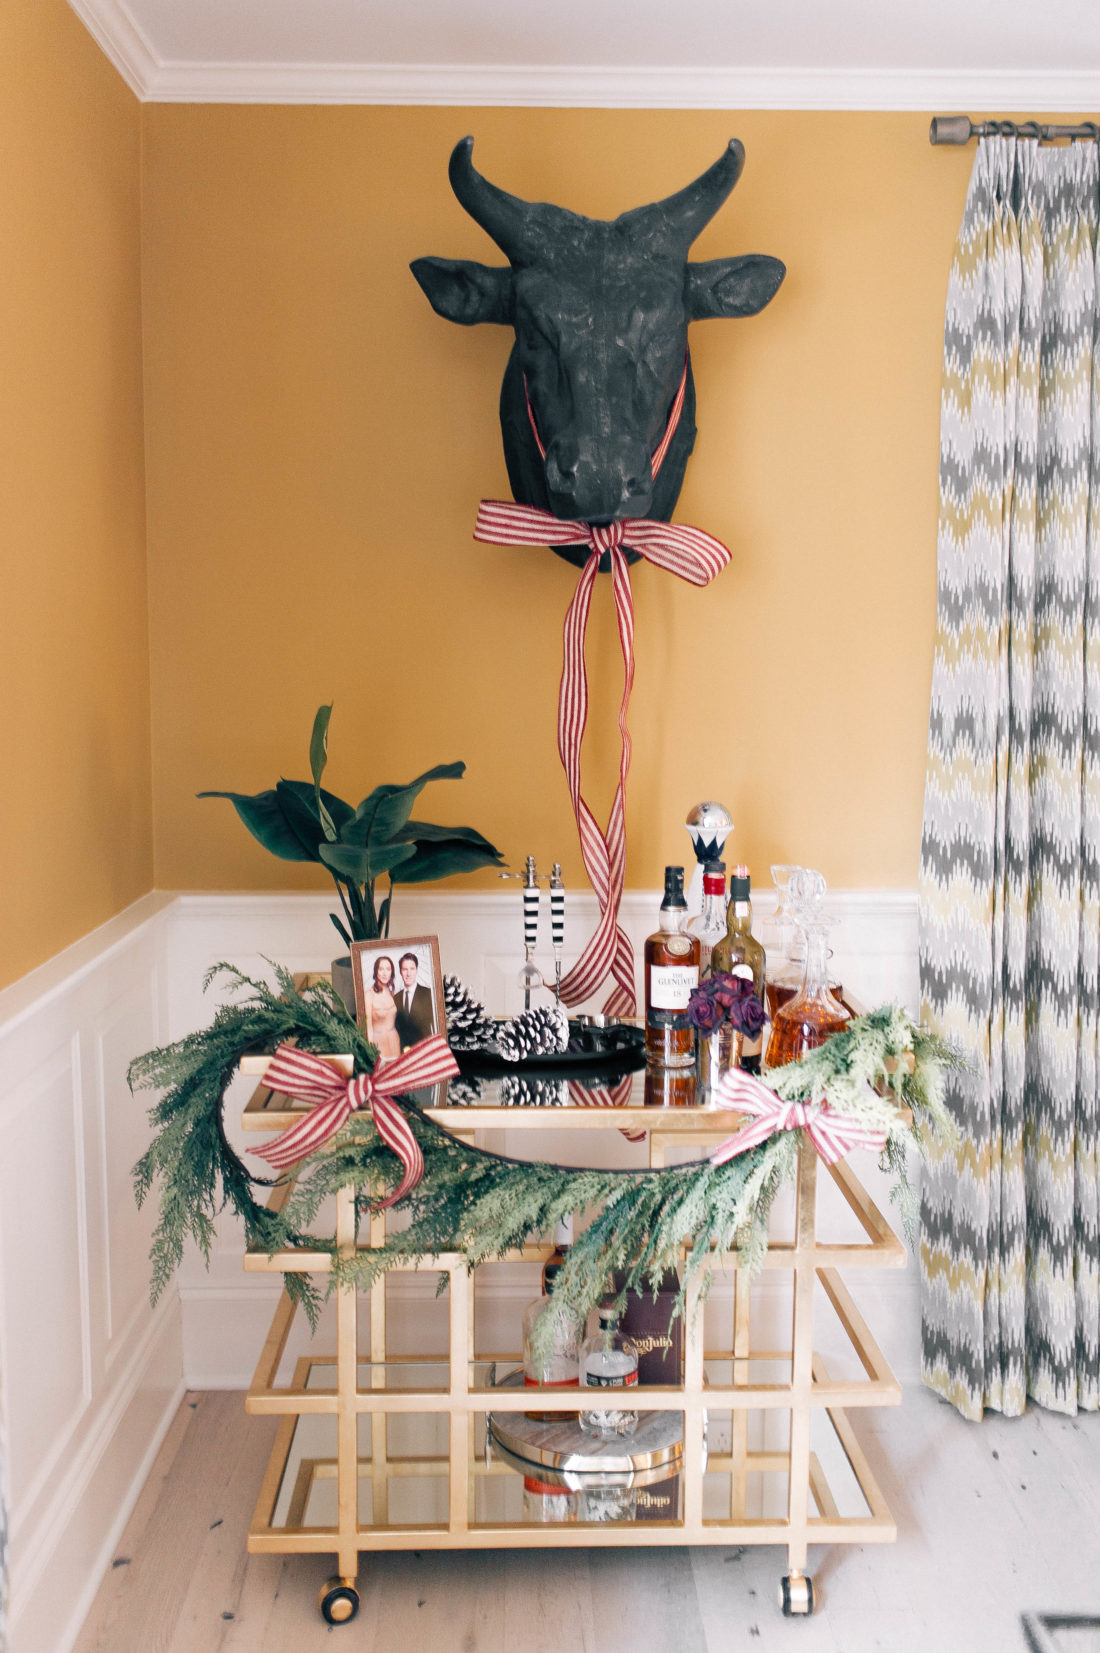 The bar cart in Eva Amurri Martino's connecticut home is dressed up for the holiday season with a garland and ribbon